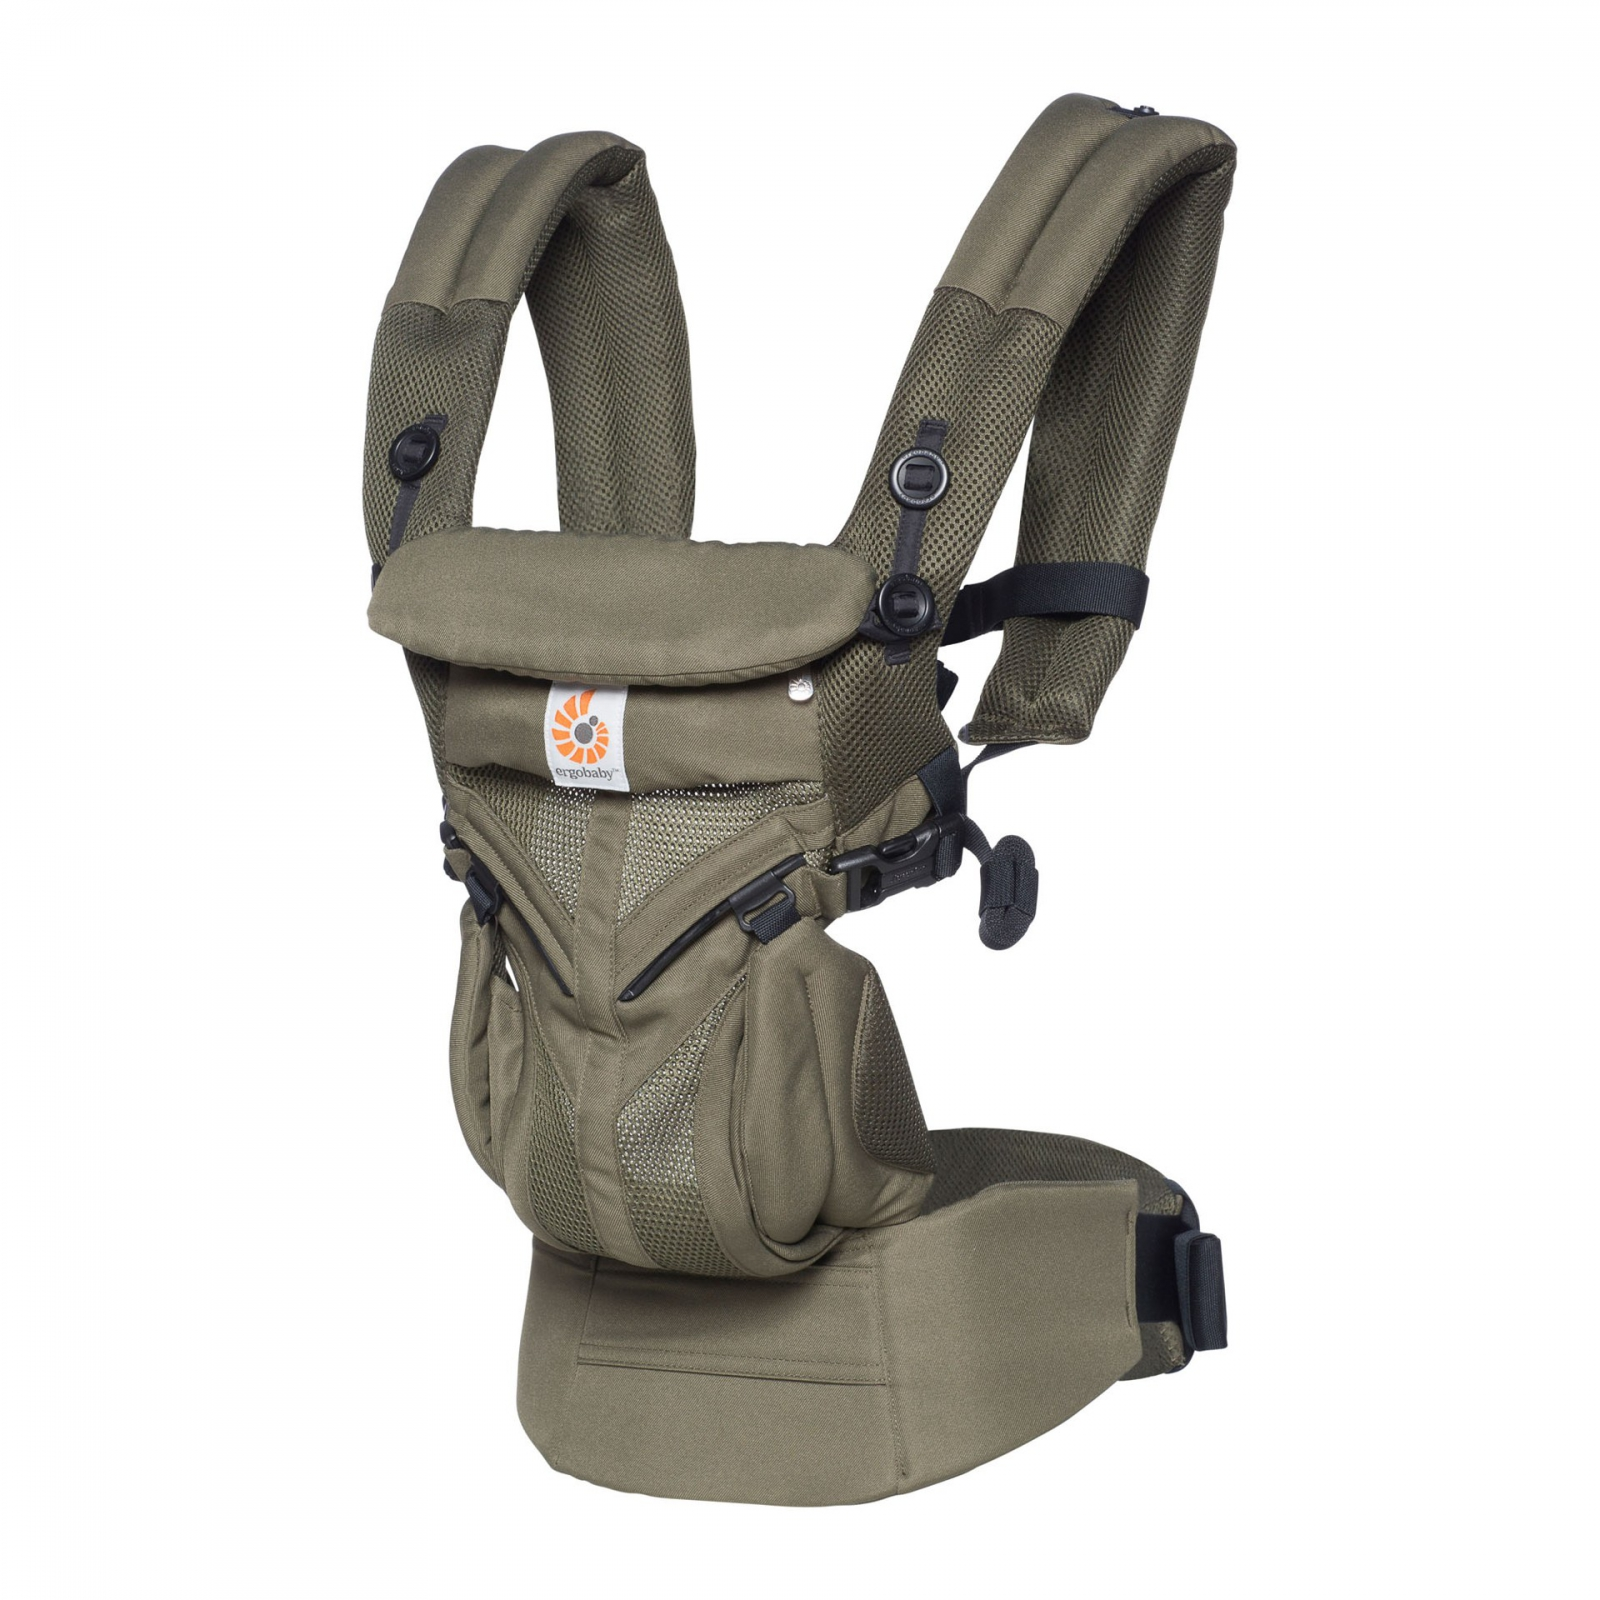 Order The Ergobaby Baby Carrier 360 OMNI 4 Positions